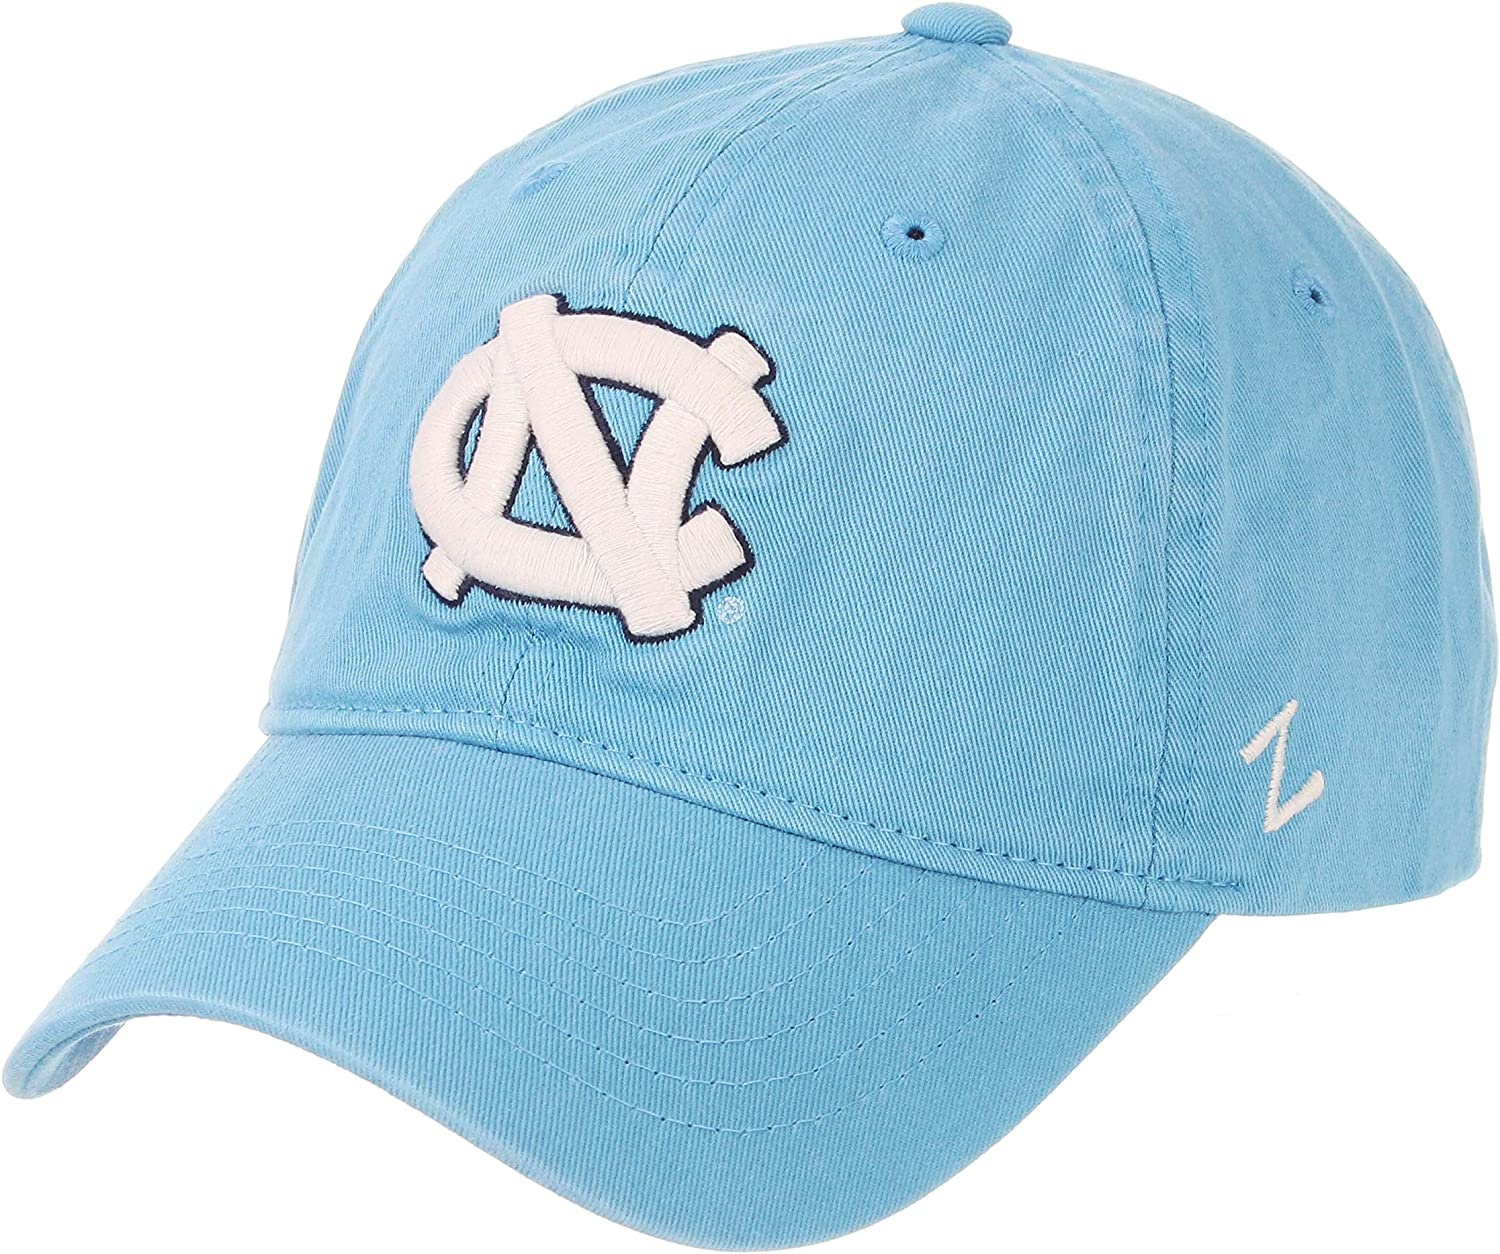 University of North Carolina UNC Tar Heels Unstructured Relaxed Fit Cotton Scholarship Adult Mens/Boys/Womens Baseball Hat/Cap Size Adjustable